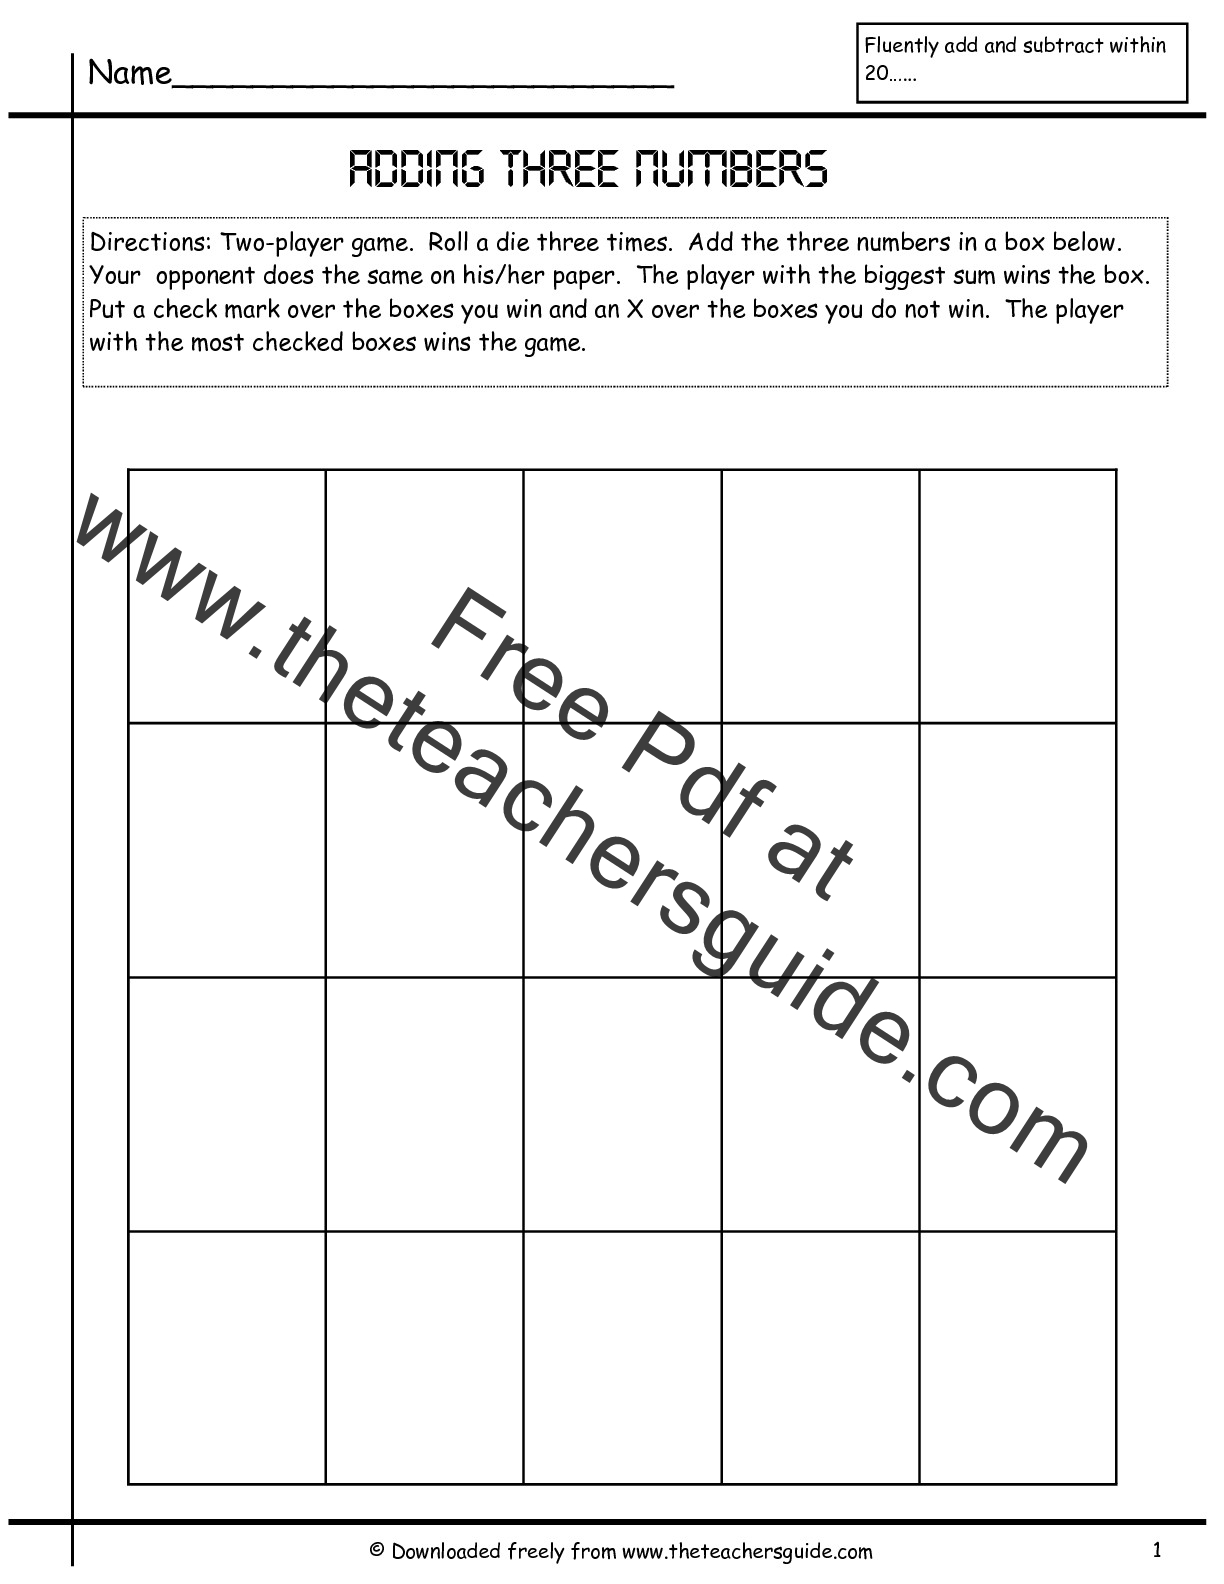 Adding Three Single Digit Numbers Worksheets from The Teachers Guide – Adding 3 Numbers Worksheets